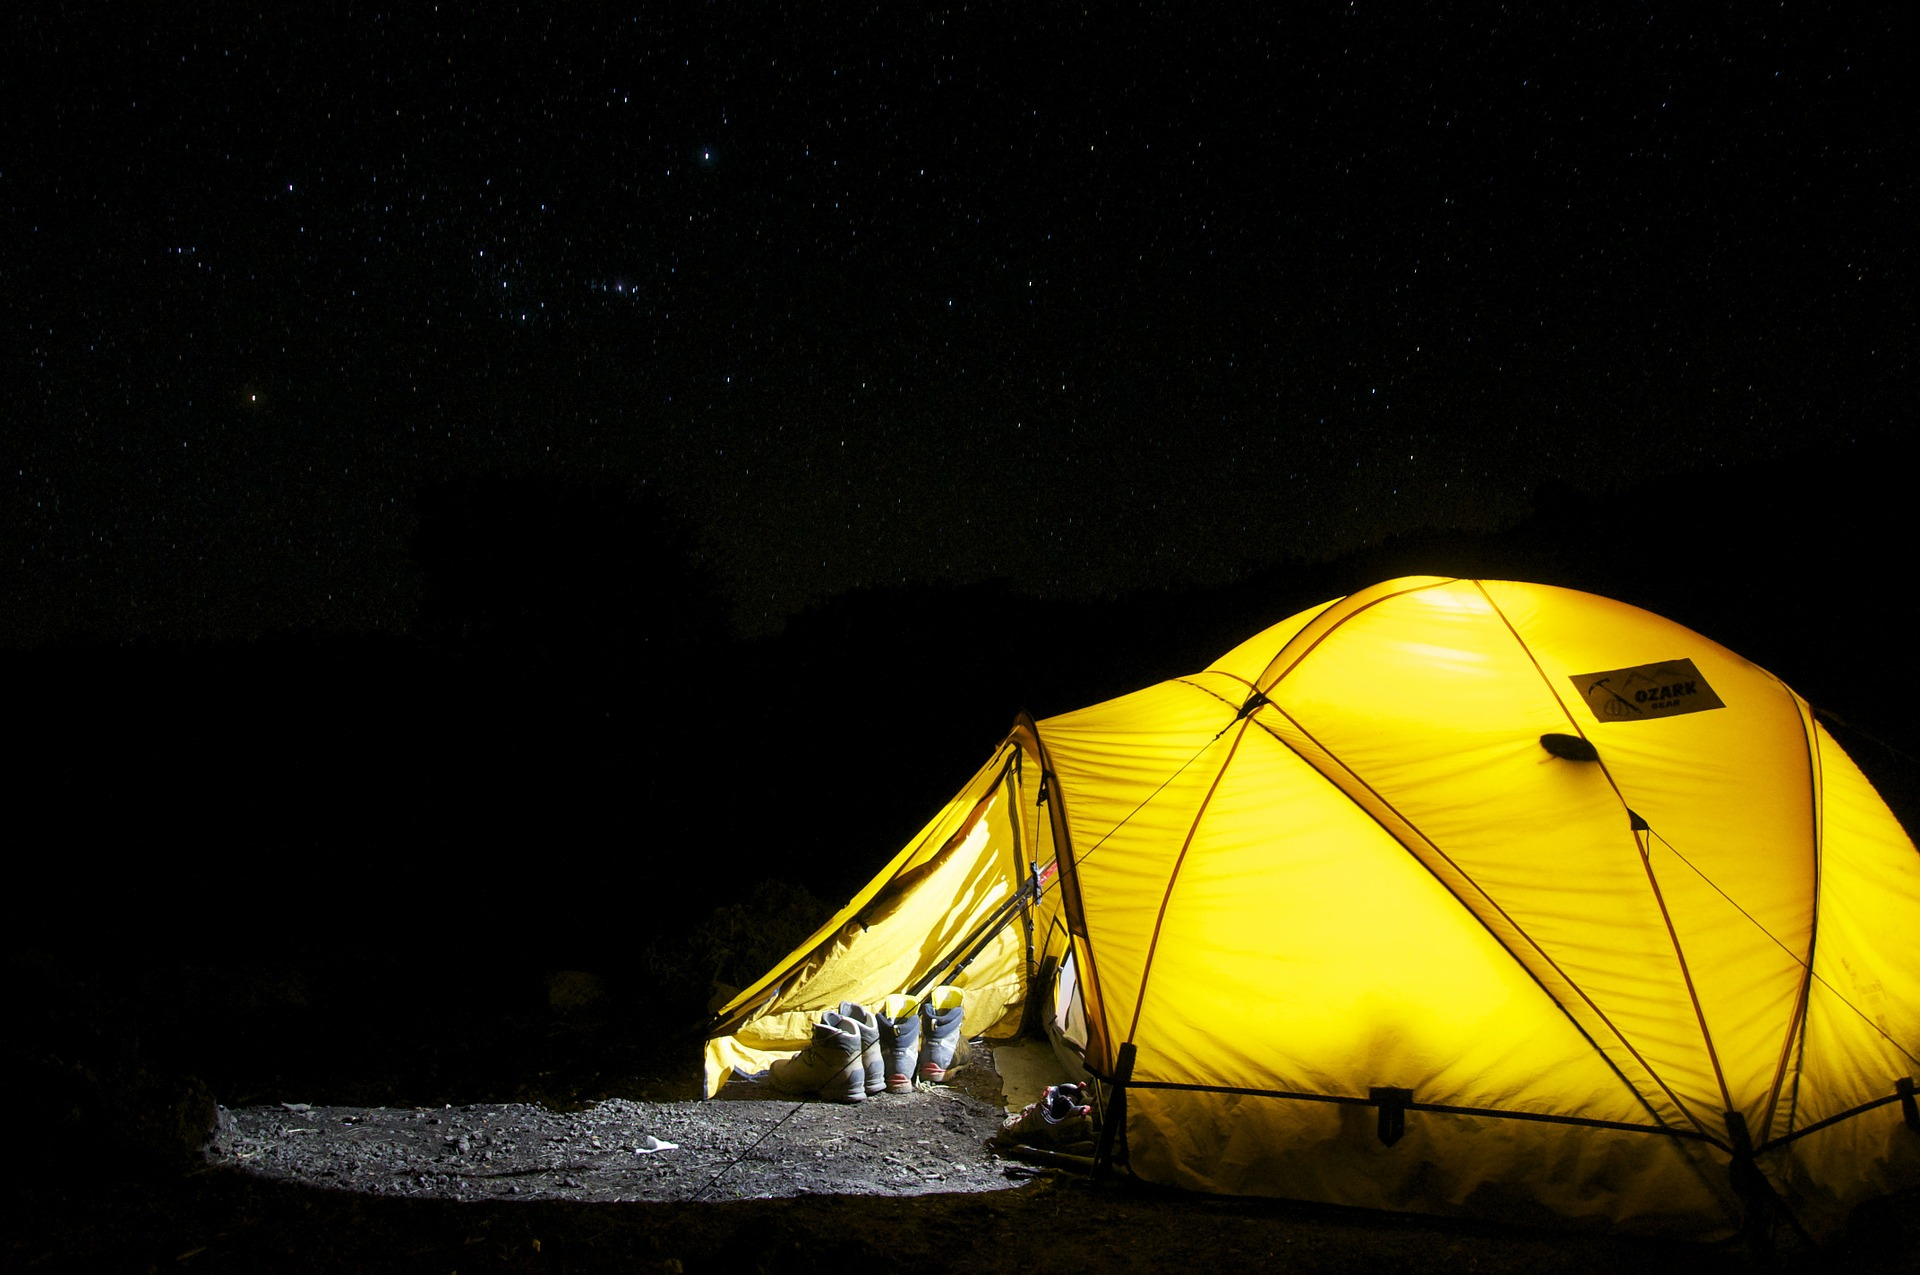 Have a fun and free night camping in a tent in your back garden